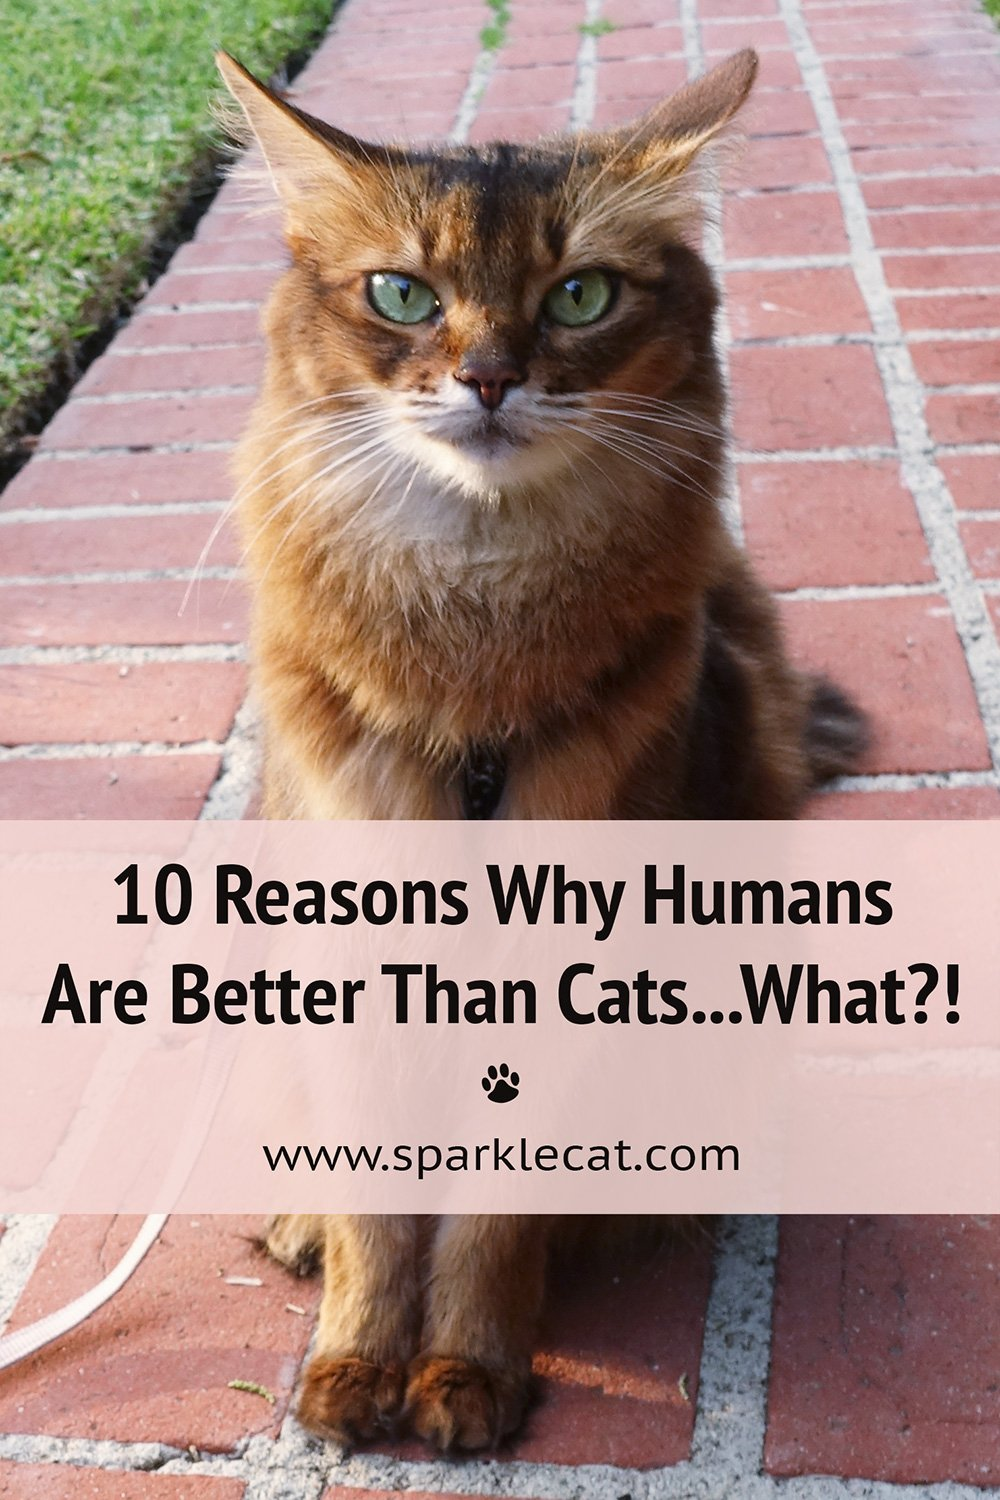 10 Reasons Why Humans Are Better Than Cats (Yes, Really!)